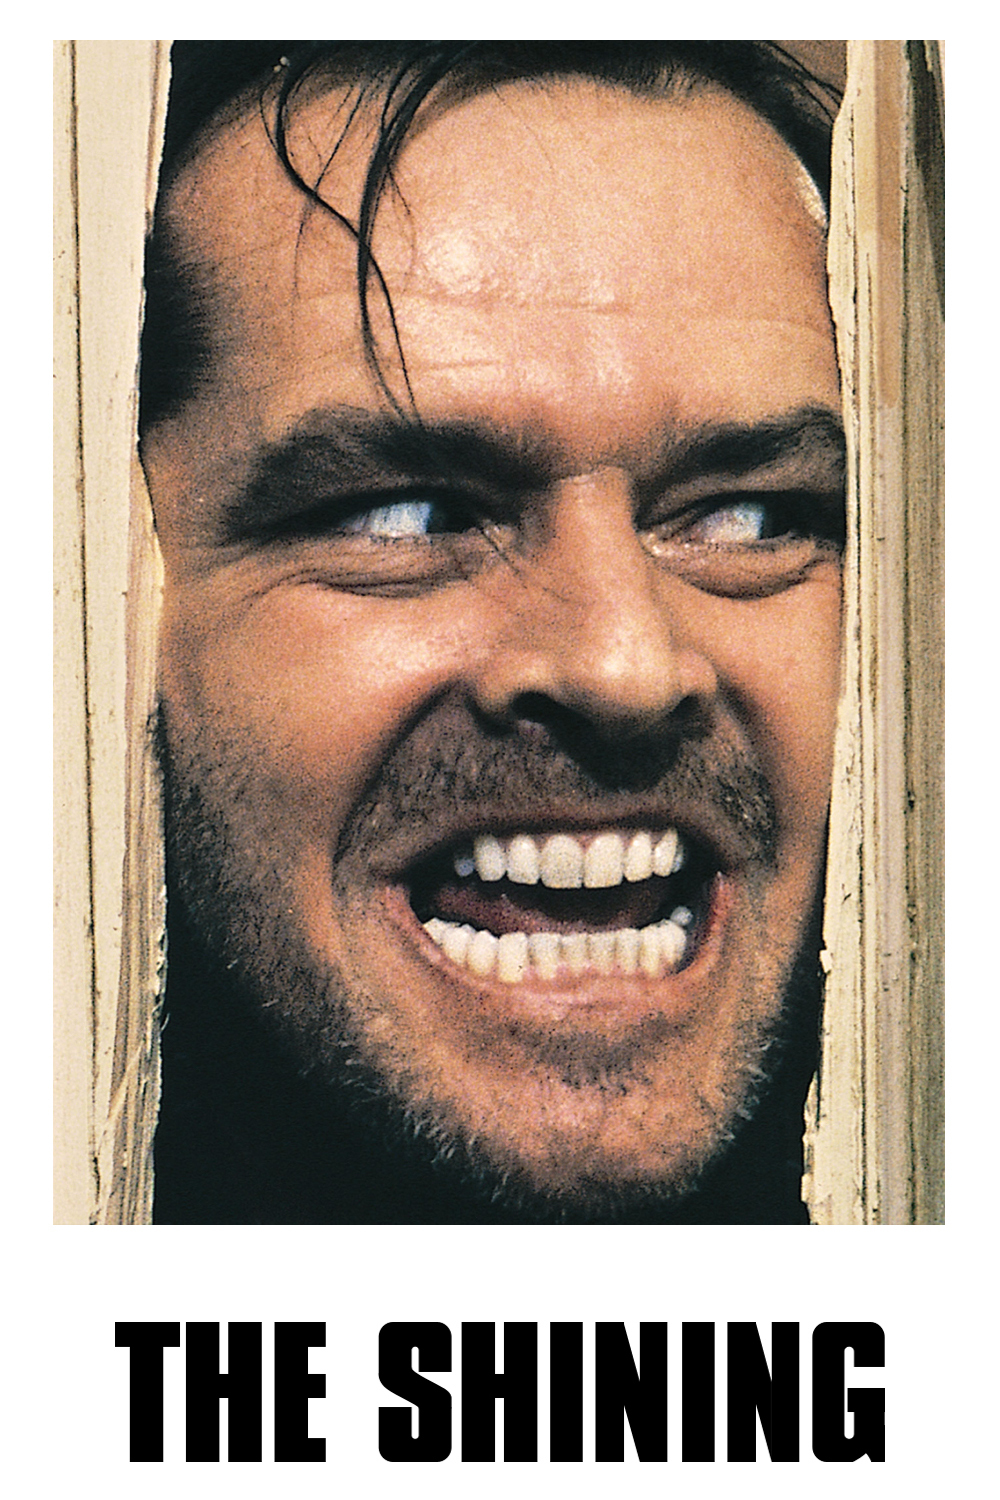 1980 The Shining movie poster